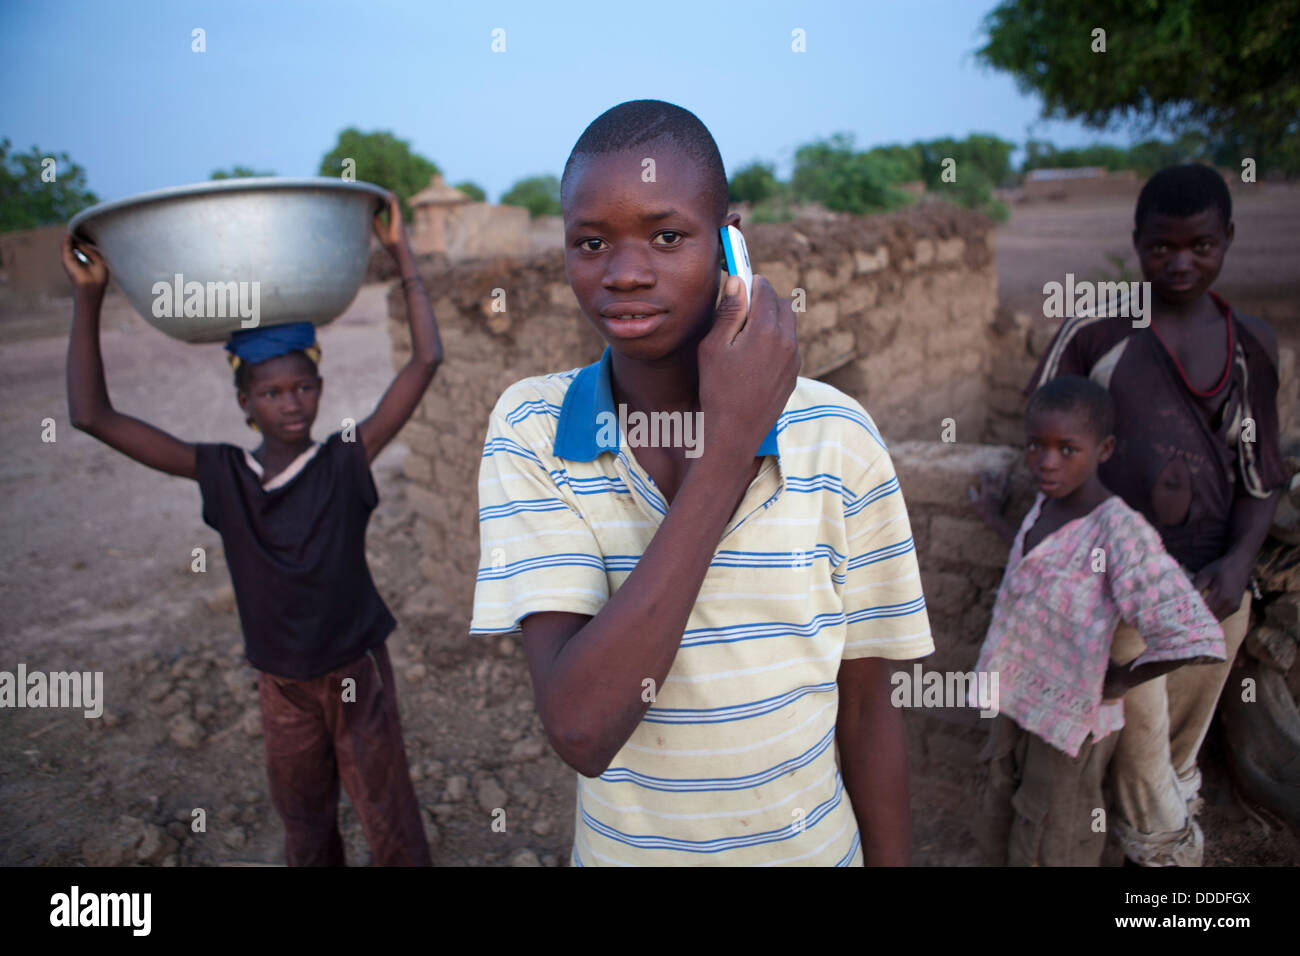 Talking on a mobile phone in rural Burkina Faso. - Stock Image